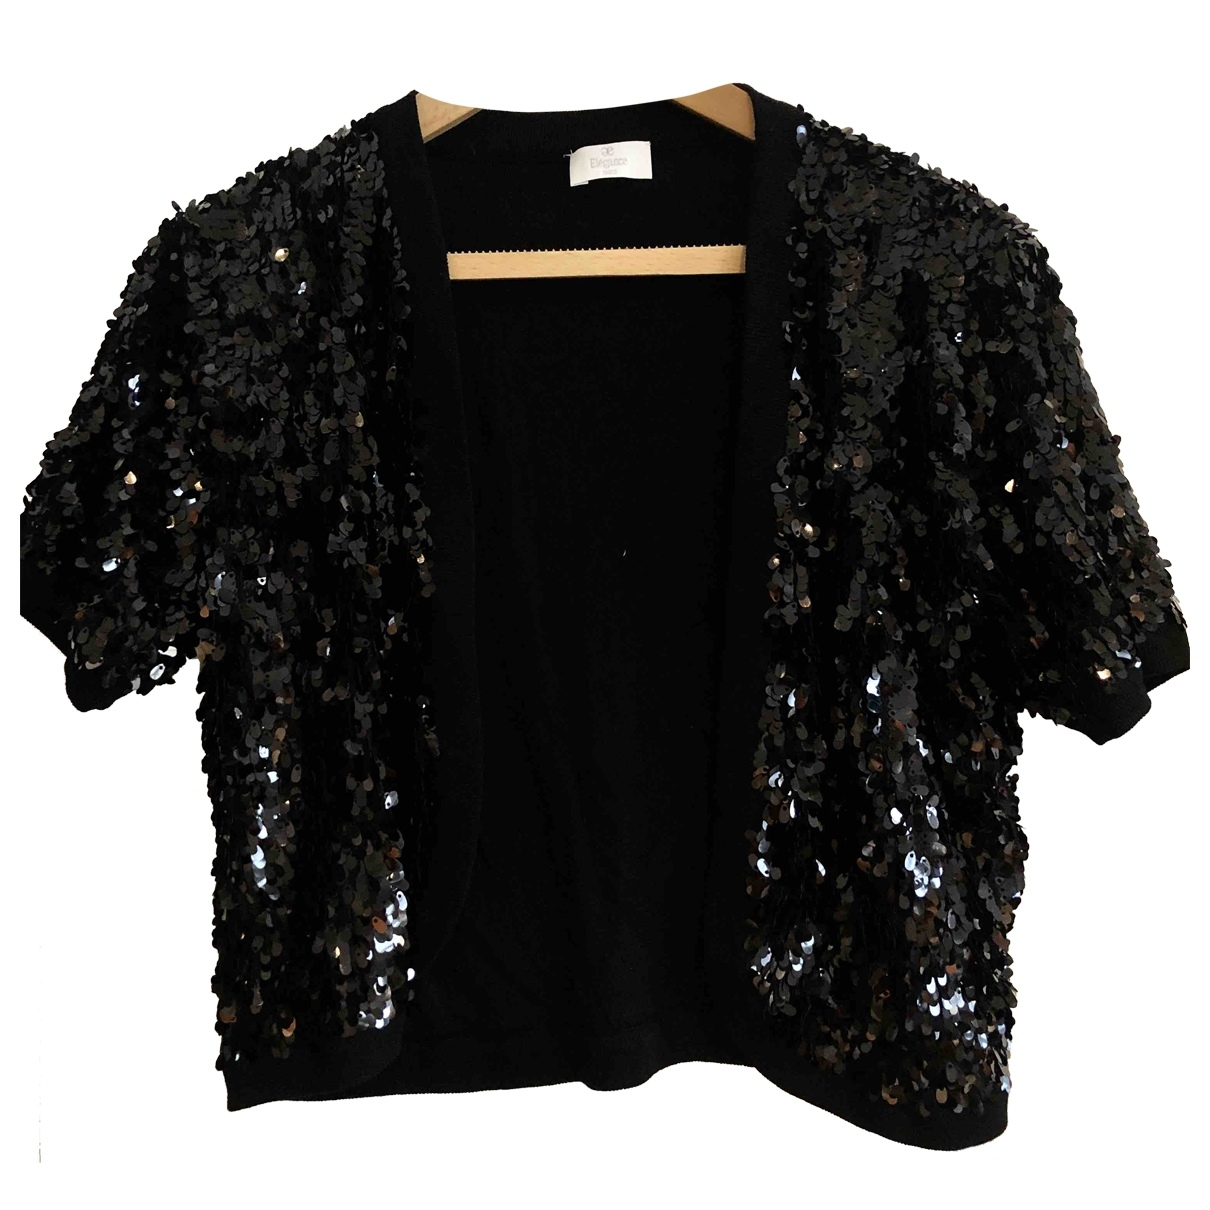 Elegance Paris \N Black jacket for Women 18-20 UK